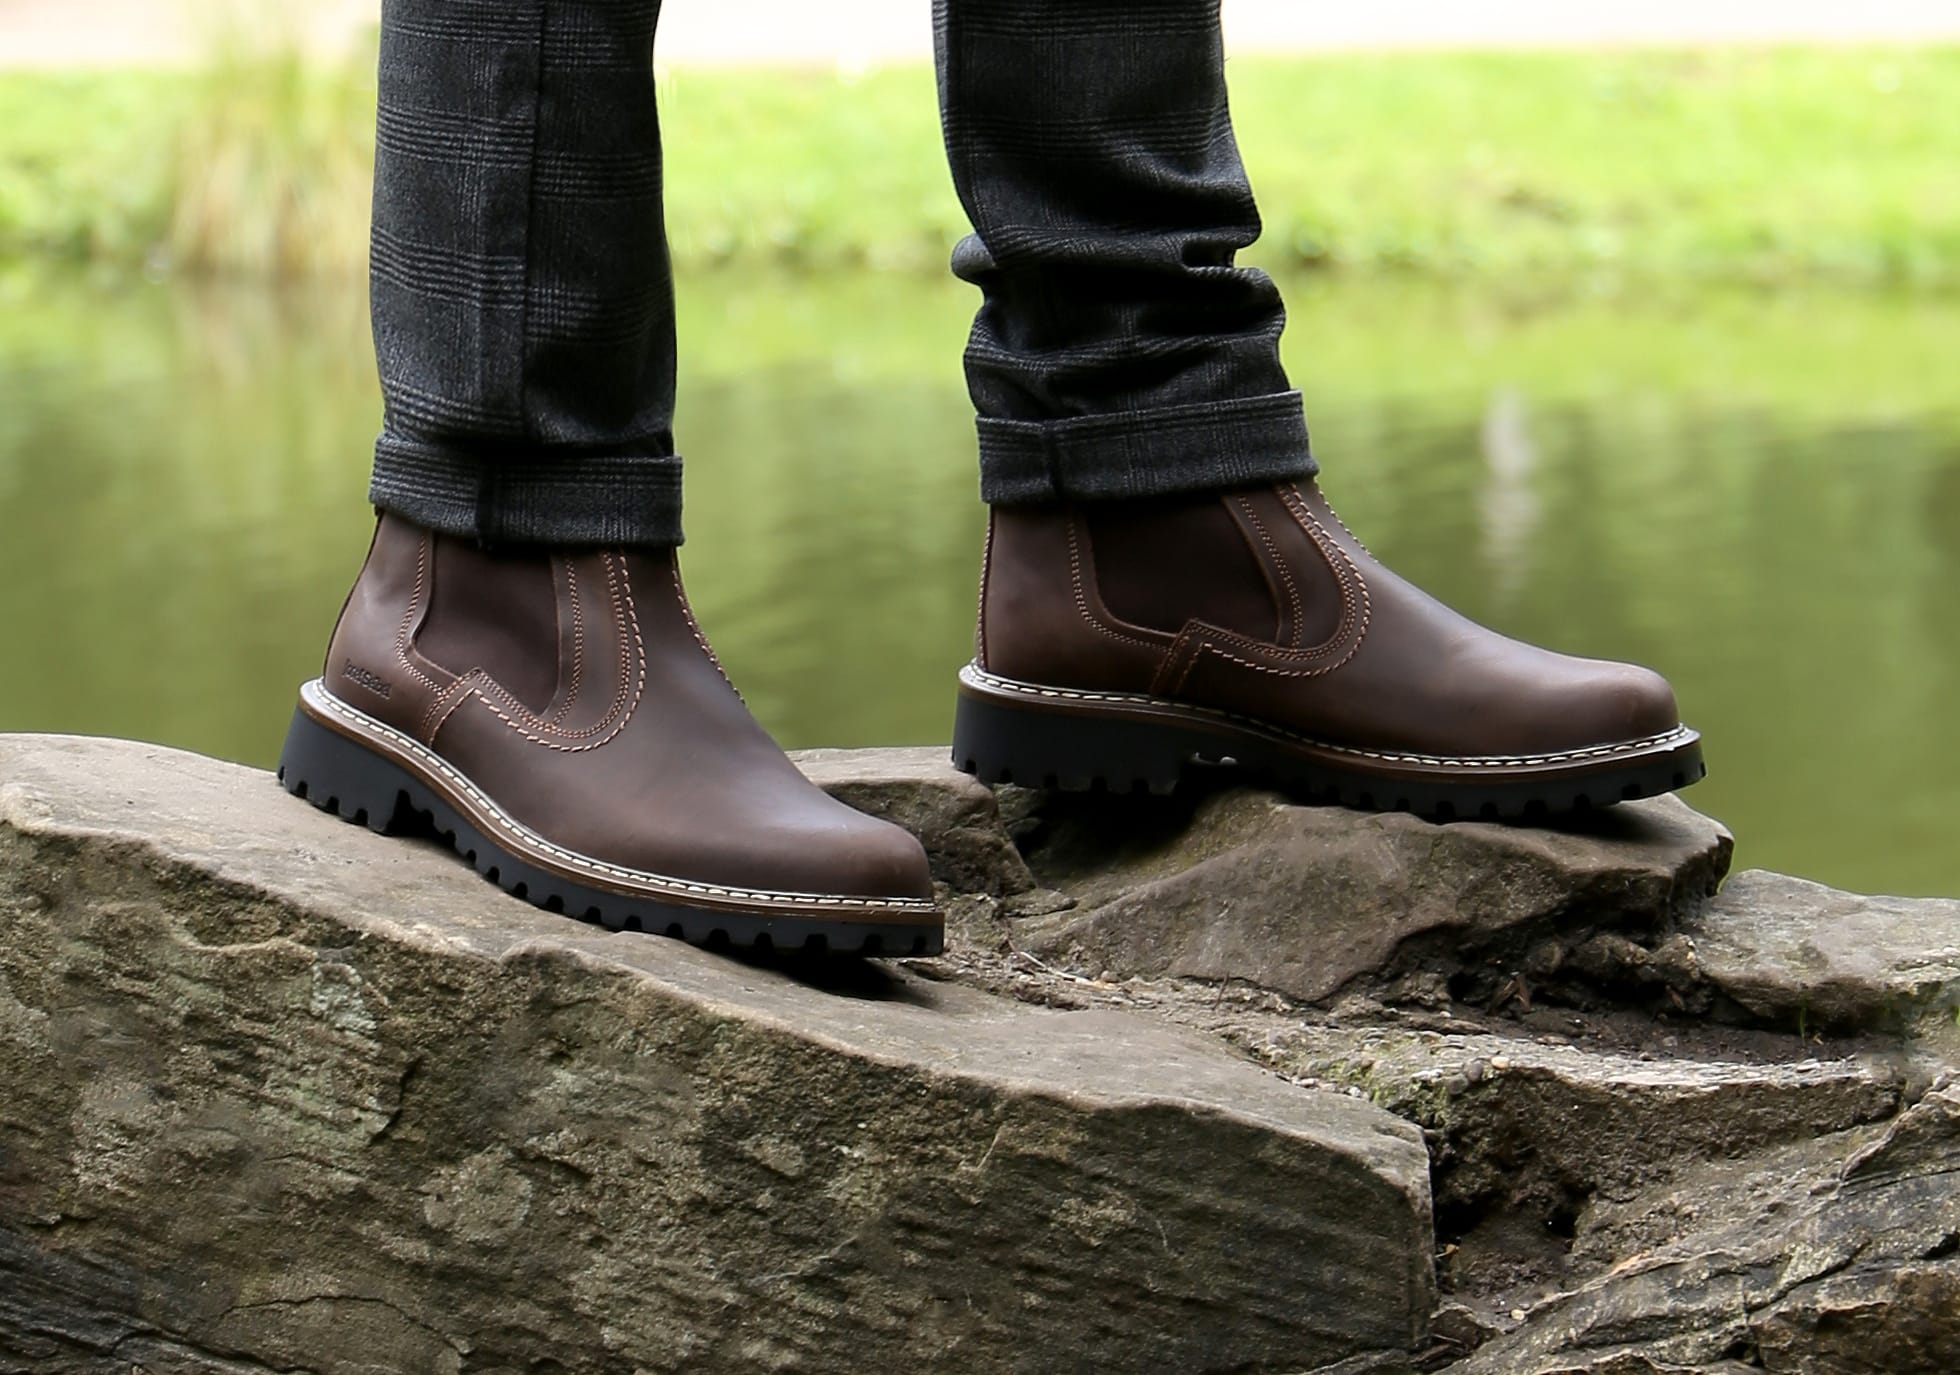 The complete men's boots buying guide | Home > Blog